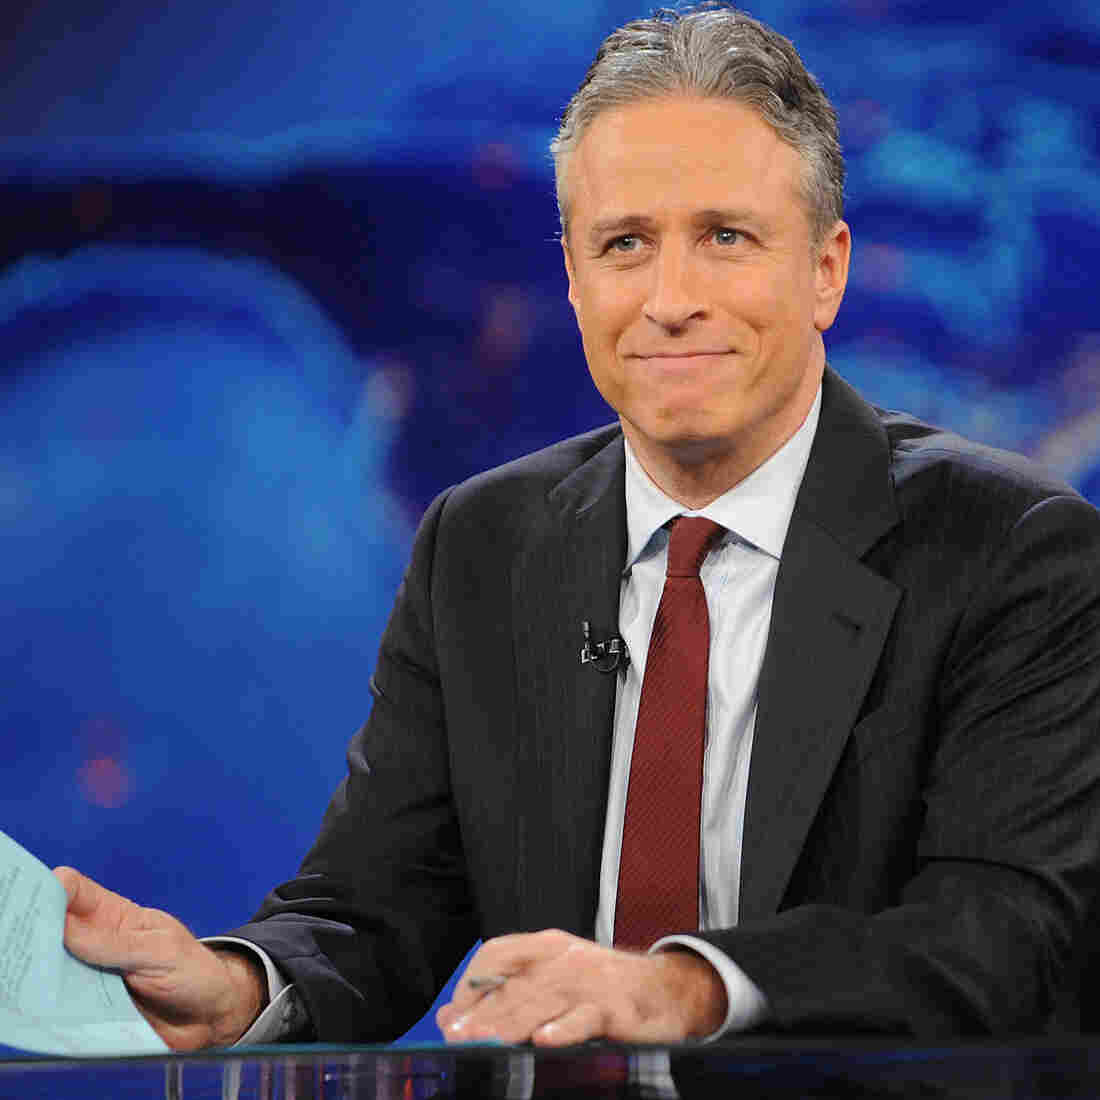 Jon Stewart On His 'Daily Show' Run: 'It So Far Exceeded My Expectations'